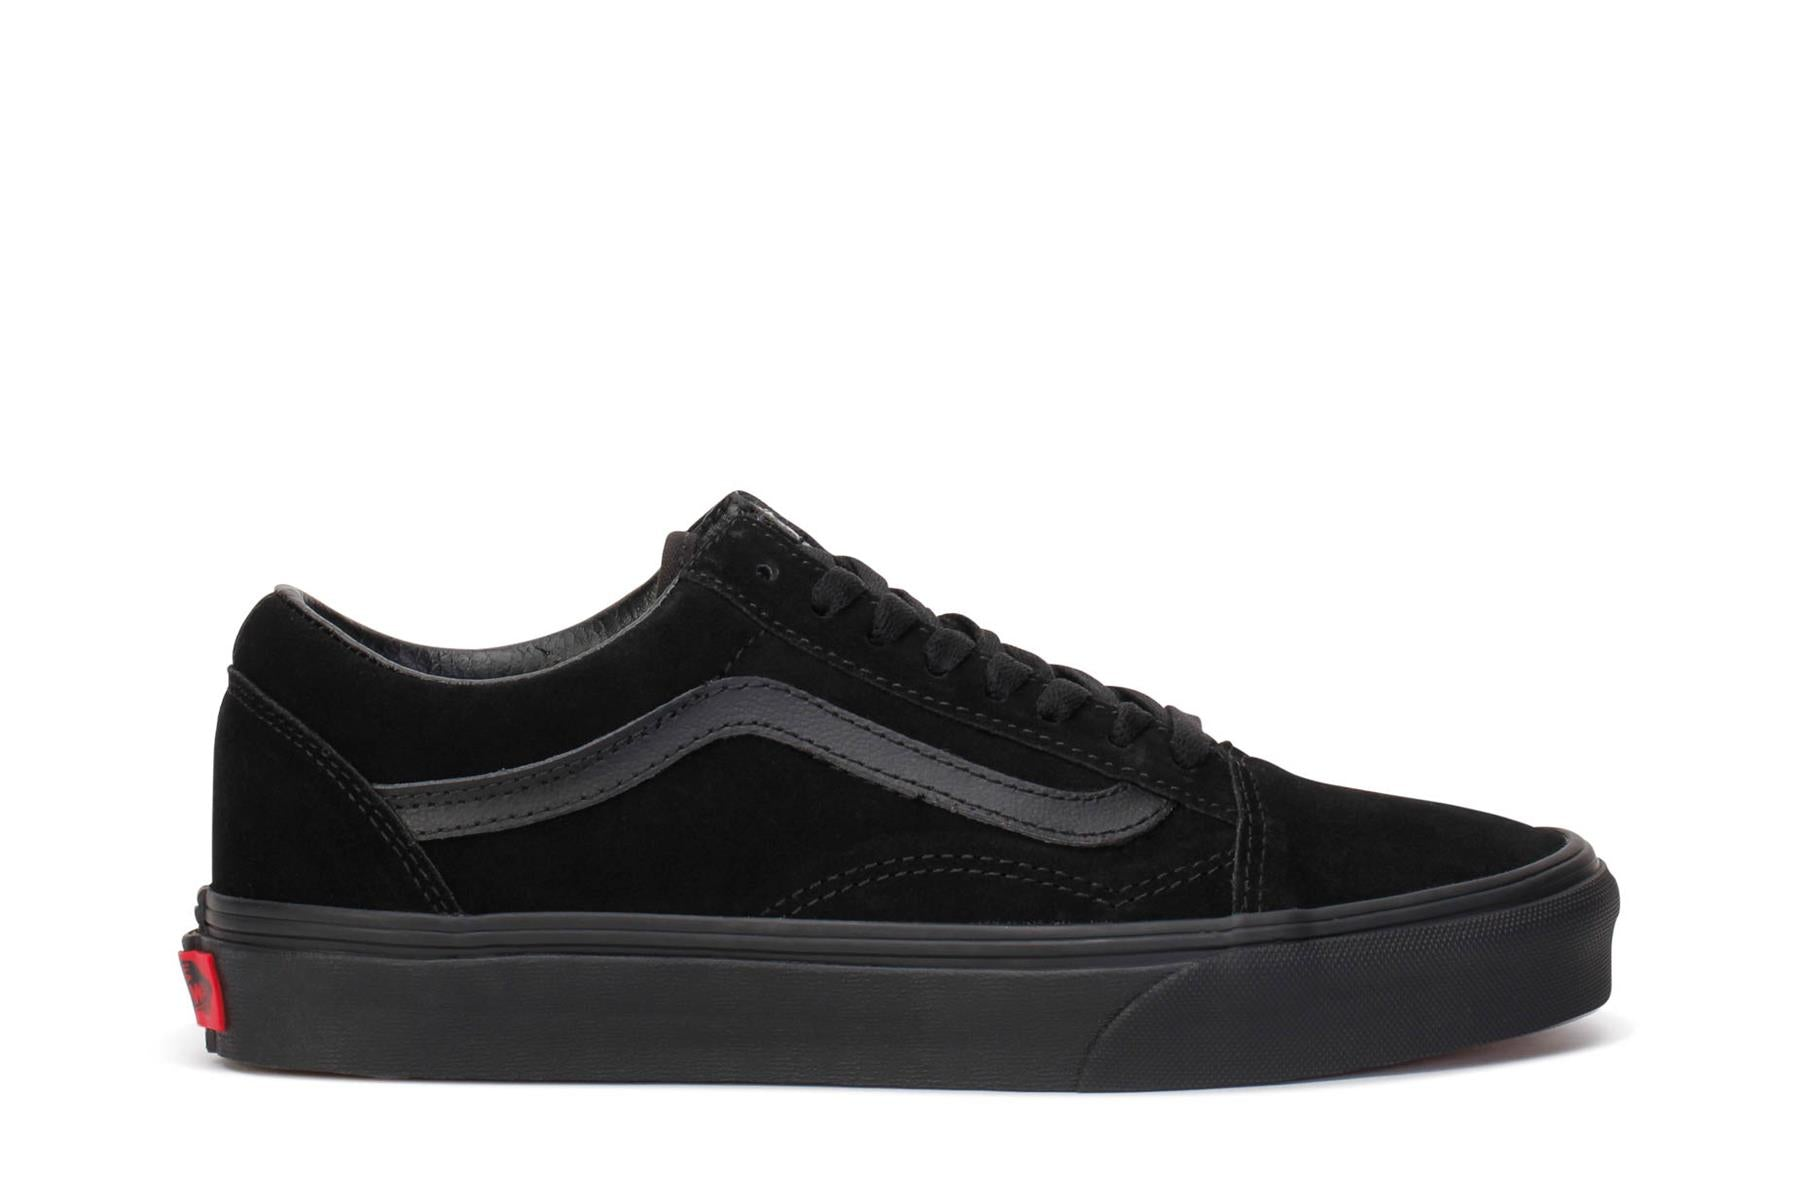 vans-mens-sneakers-old-skool-black-black-suede-vn0a38g1nri-main